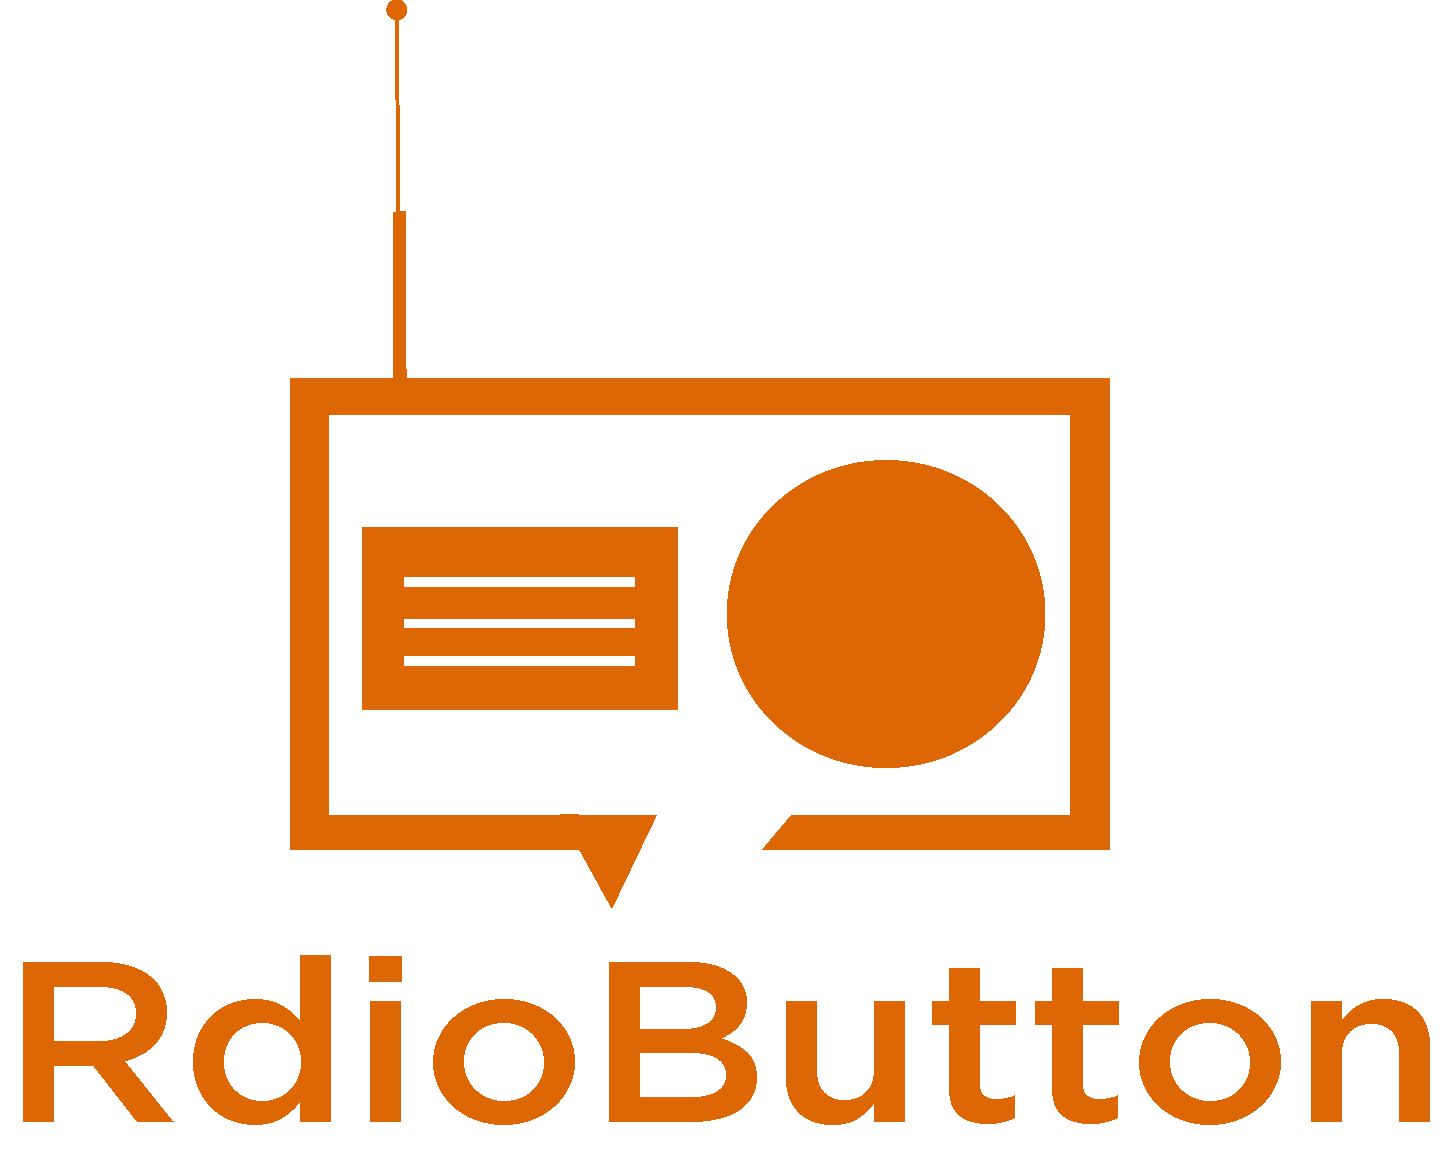 Rdiobutton